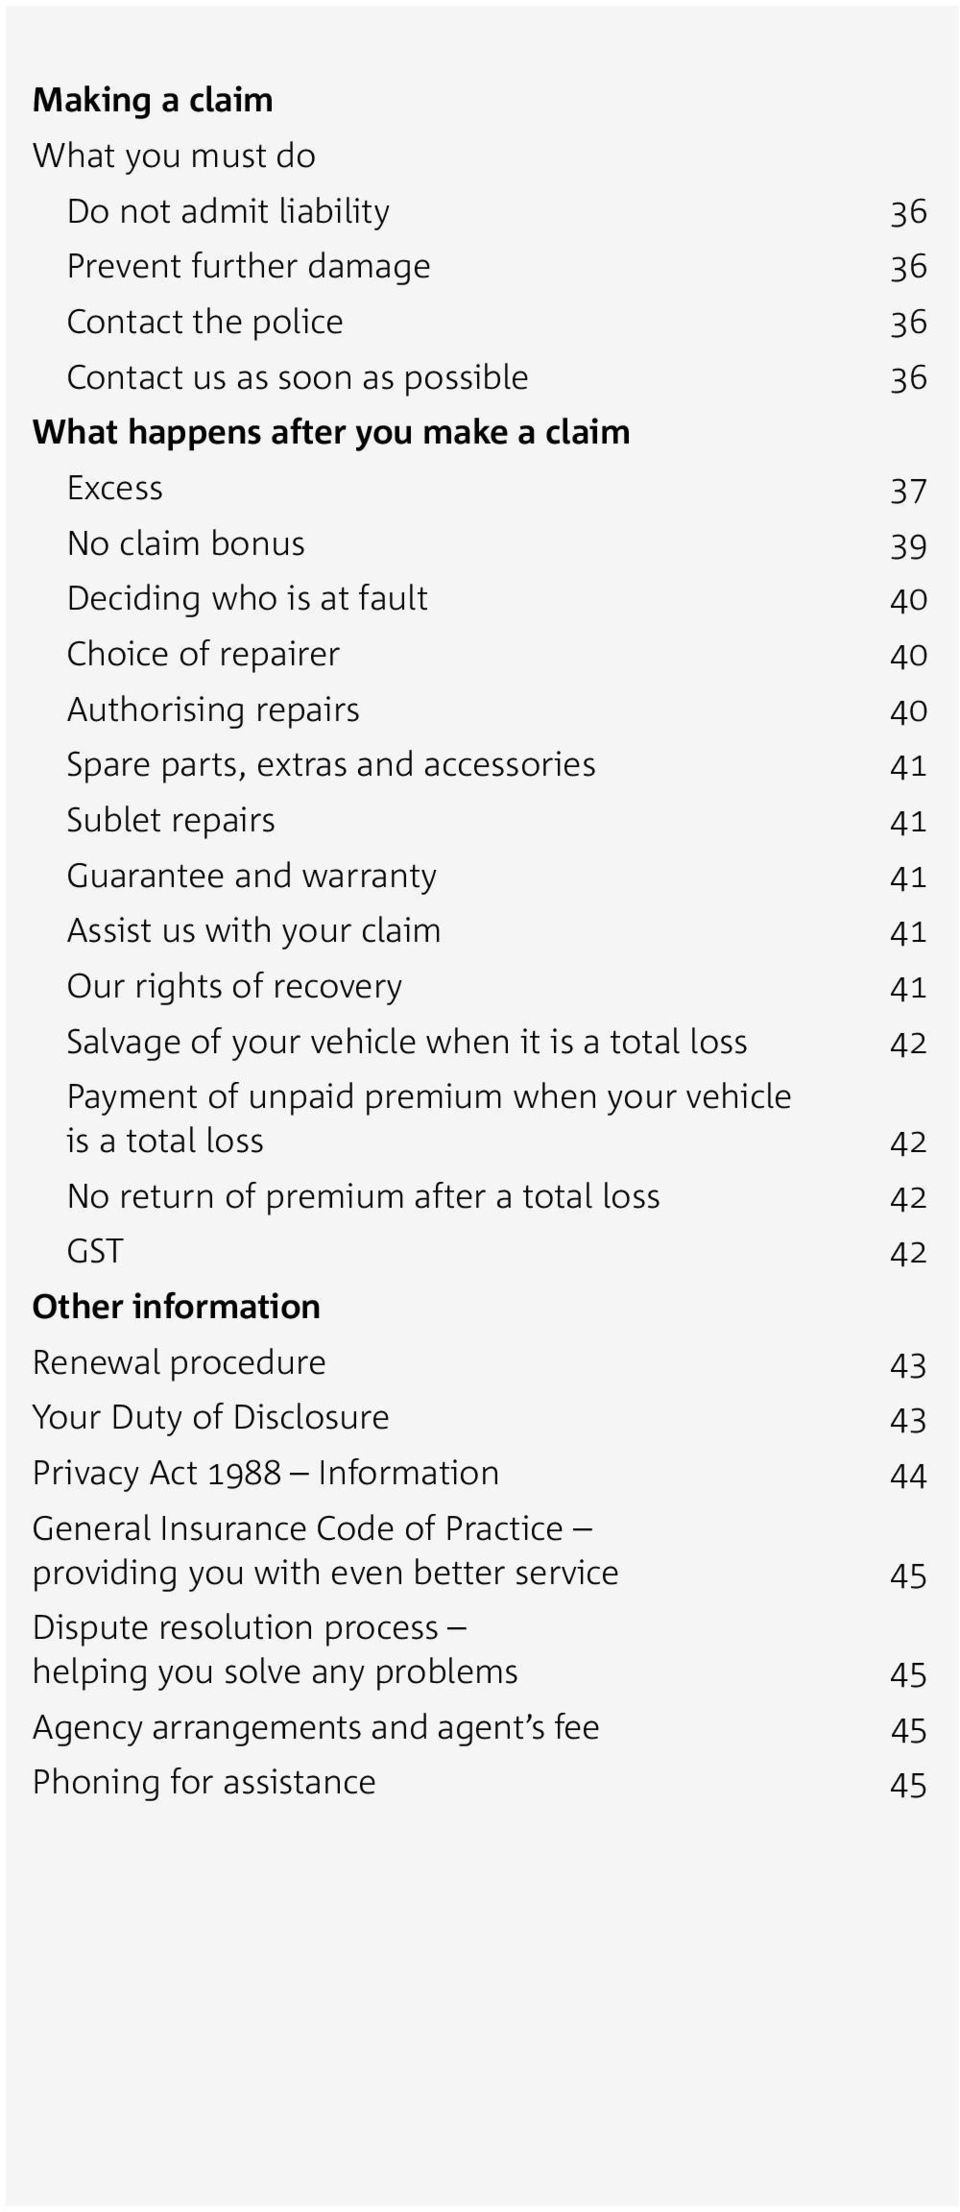 rights of recovery 41 Salvage of your vehicle when it is a total loss 42 Payment of unpaid premium when your vehicle is a total loss 42 No return of premium after a total loss 42 GST 42 Other